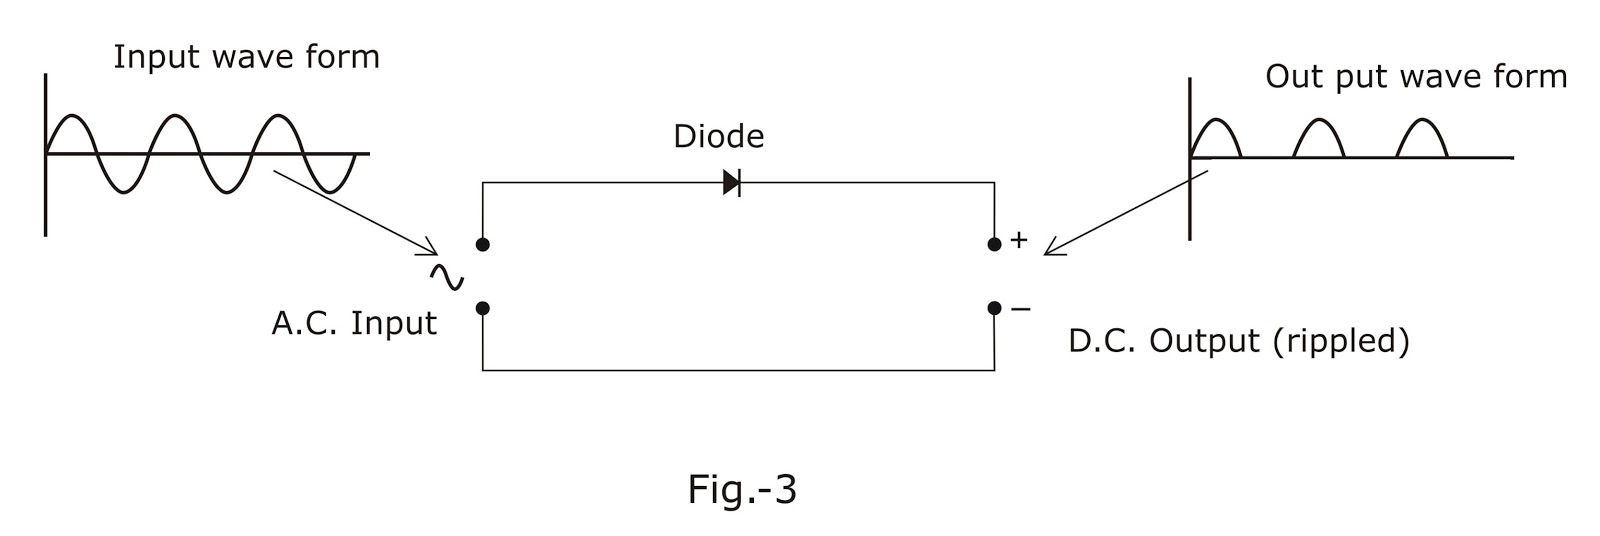 Electronic Circuits Dioderectifiercircuitjpg Selenium Diode Rectifier Germanium Silicon Diodes Or Metal Were In Use Mainly To Convert Rectify Ac Current Dc